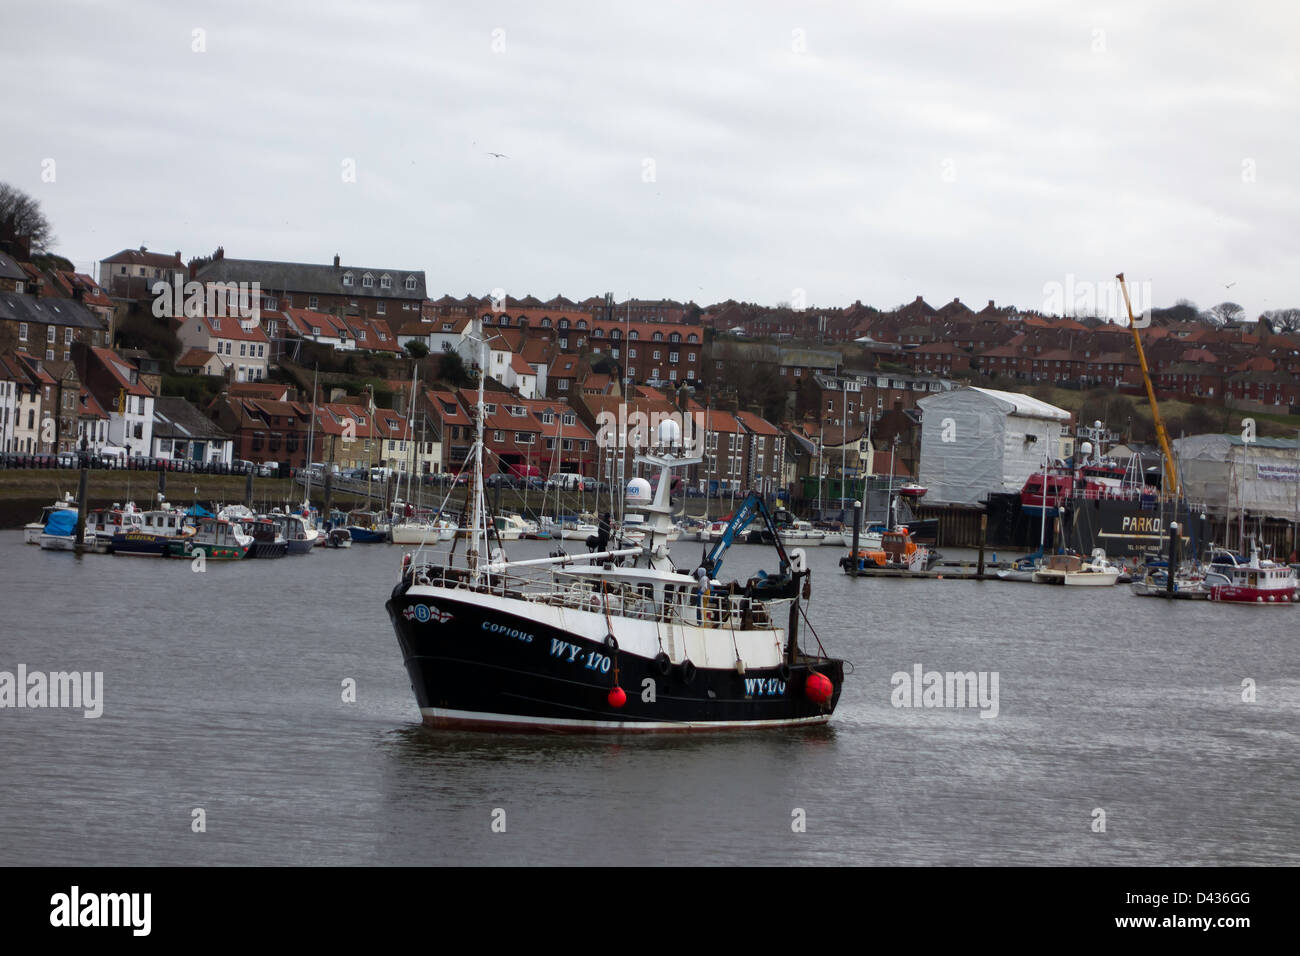 "A fishing trawler WY170 called ""Copious"" in Whitby Harbour waiting for the swing bridge to open giving access to Stock Photo"